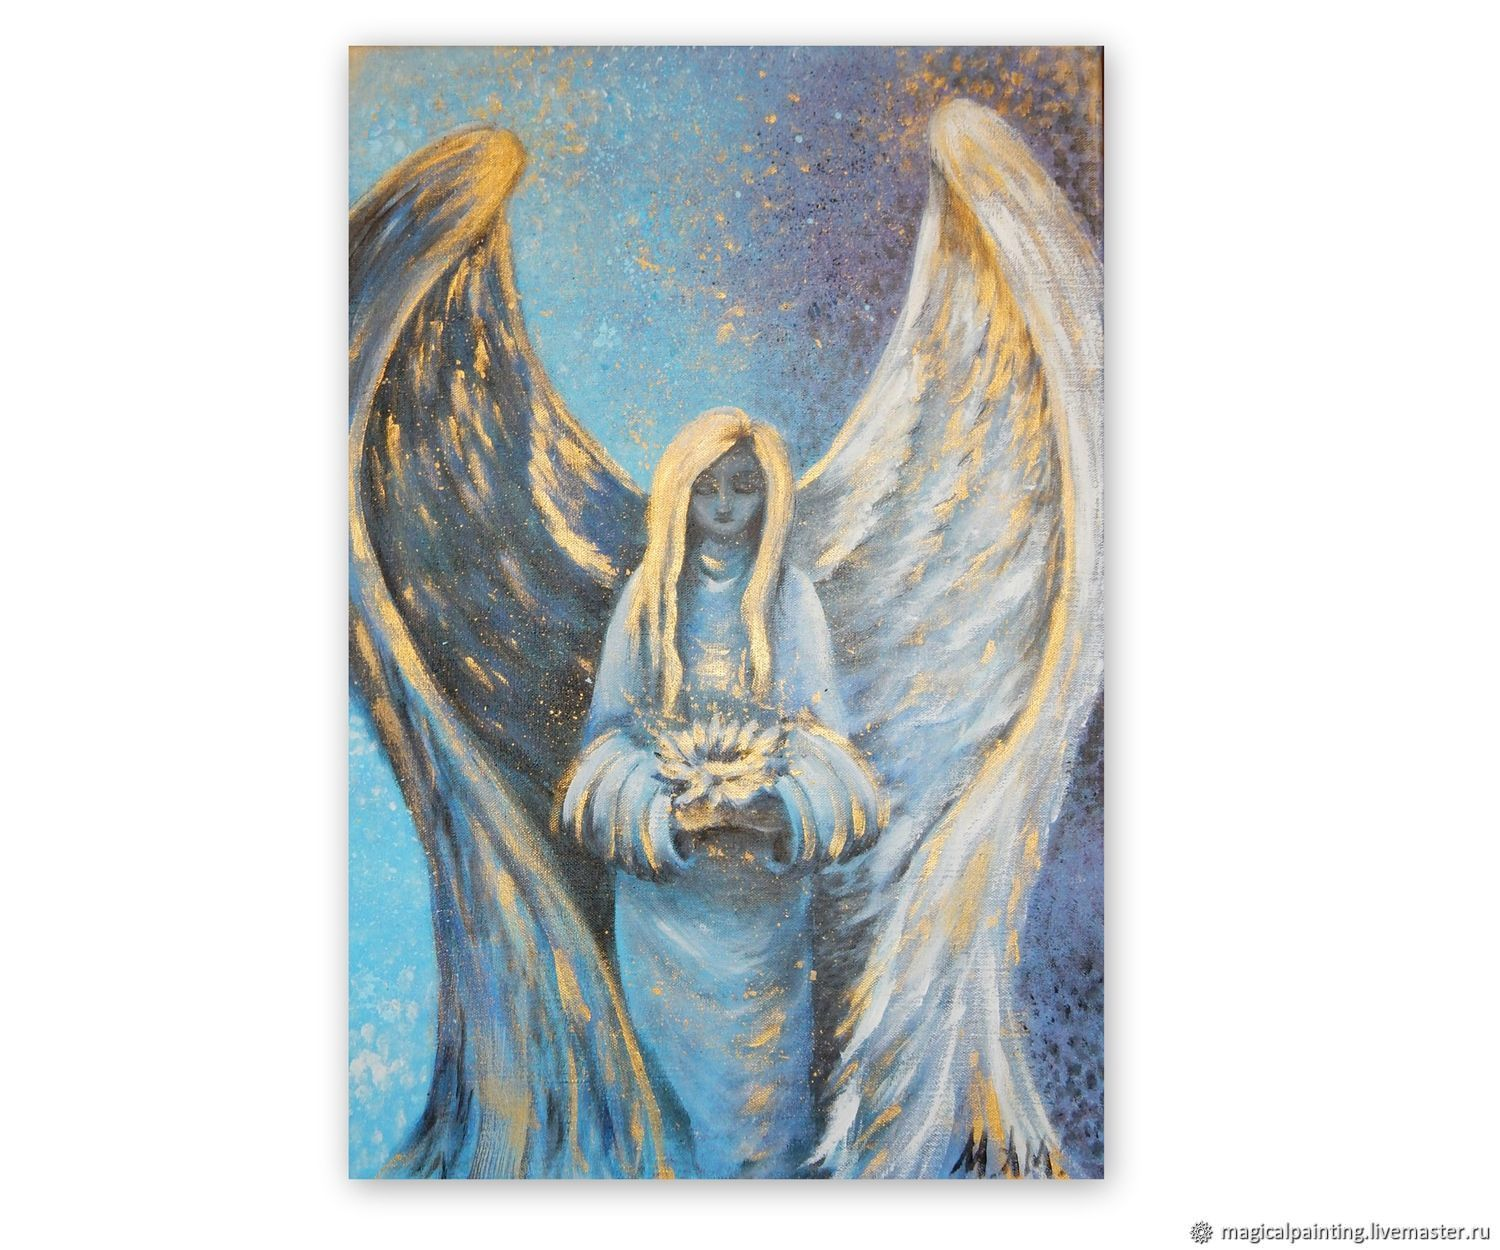 Painting Angel Of Wisdom, Pictures, St. Petersburg,  Фото №1